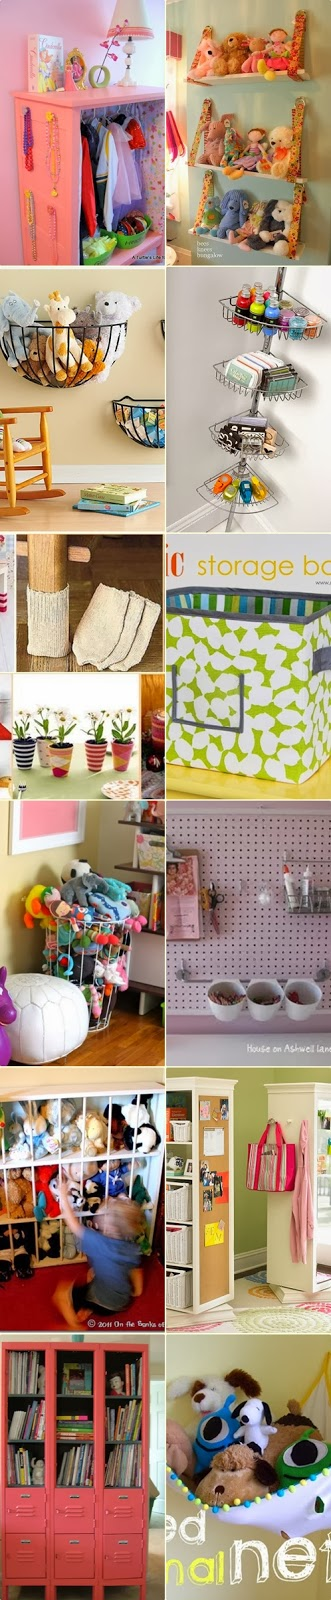 50 Organizational Tips for Kids' Spaces